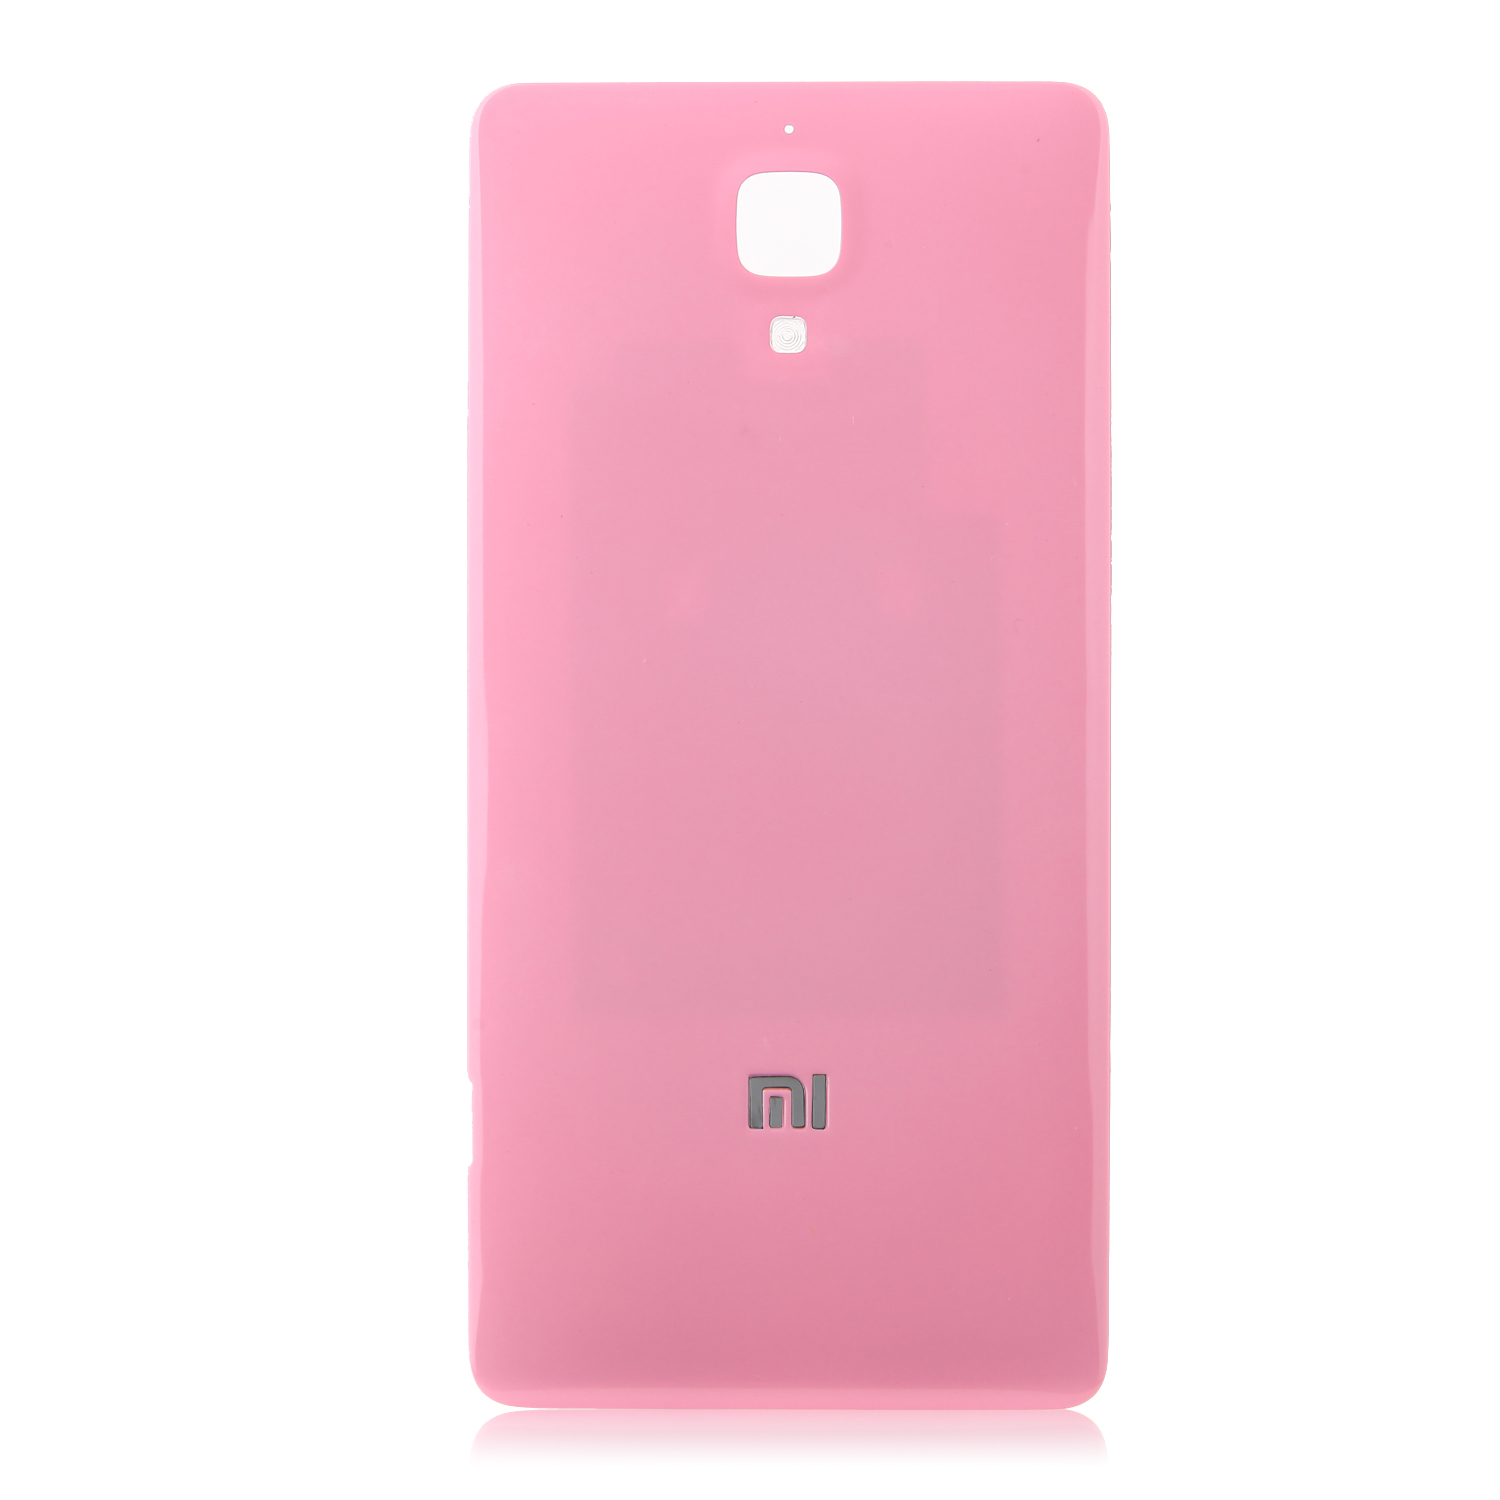 Replacement Battery Cover Back Case for XIAOMI MI4 Smartphone Pink